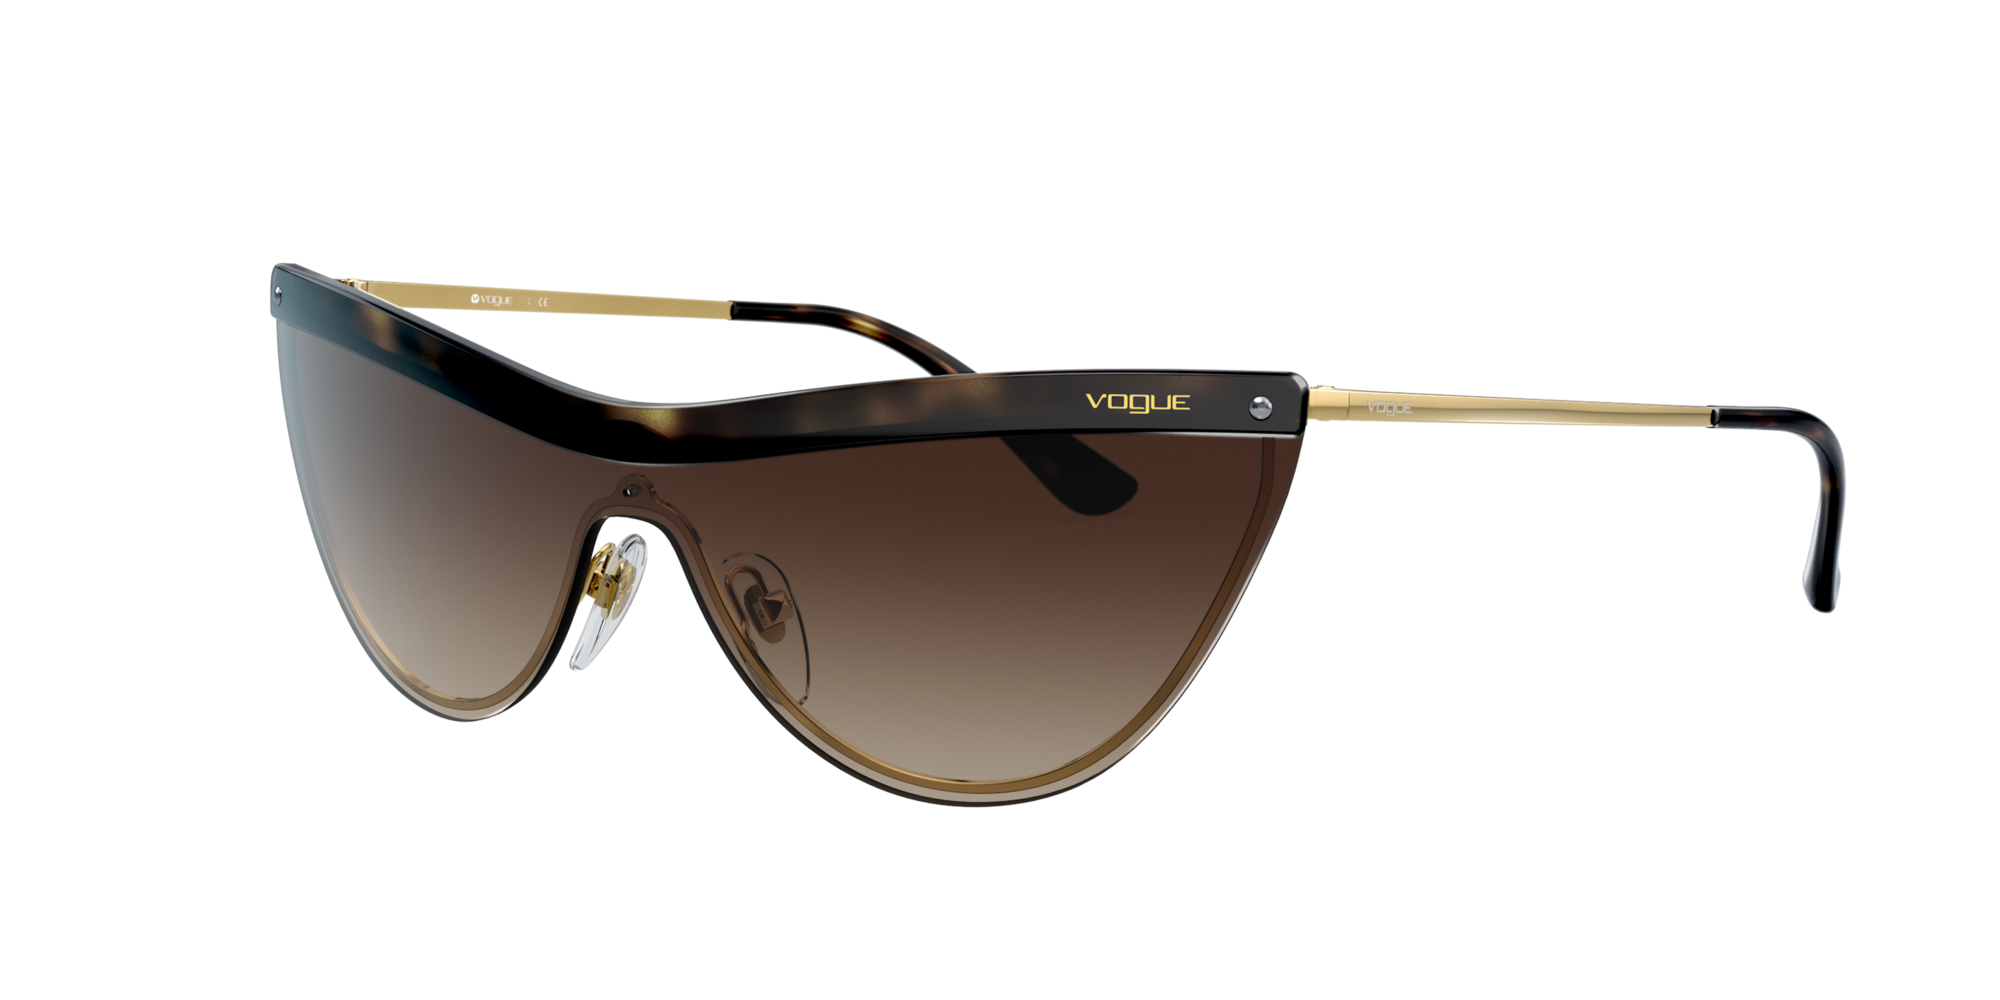 Vogue Eyewear Unisex  VO4148S -  Frame color: Habana, Lens color: Degradadas marron